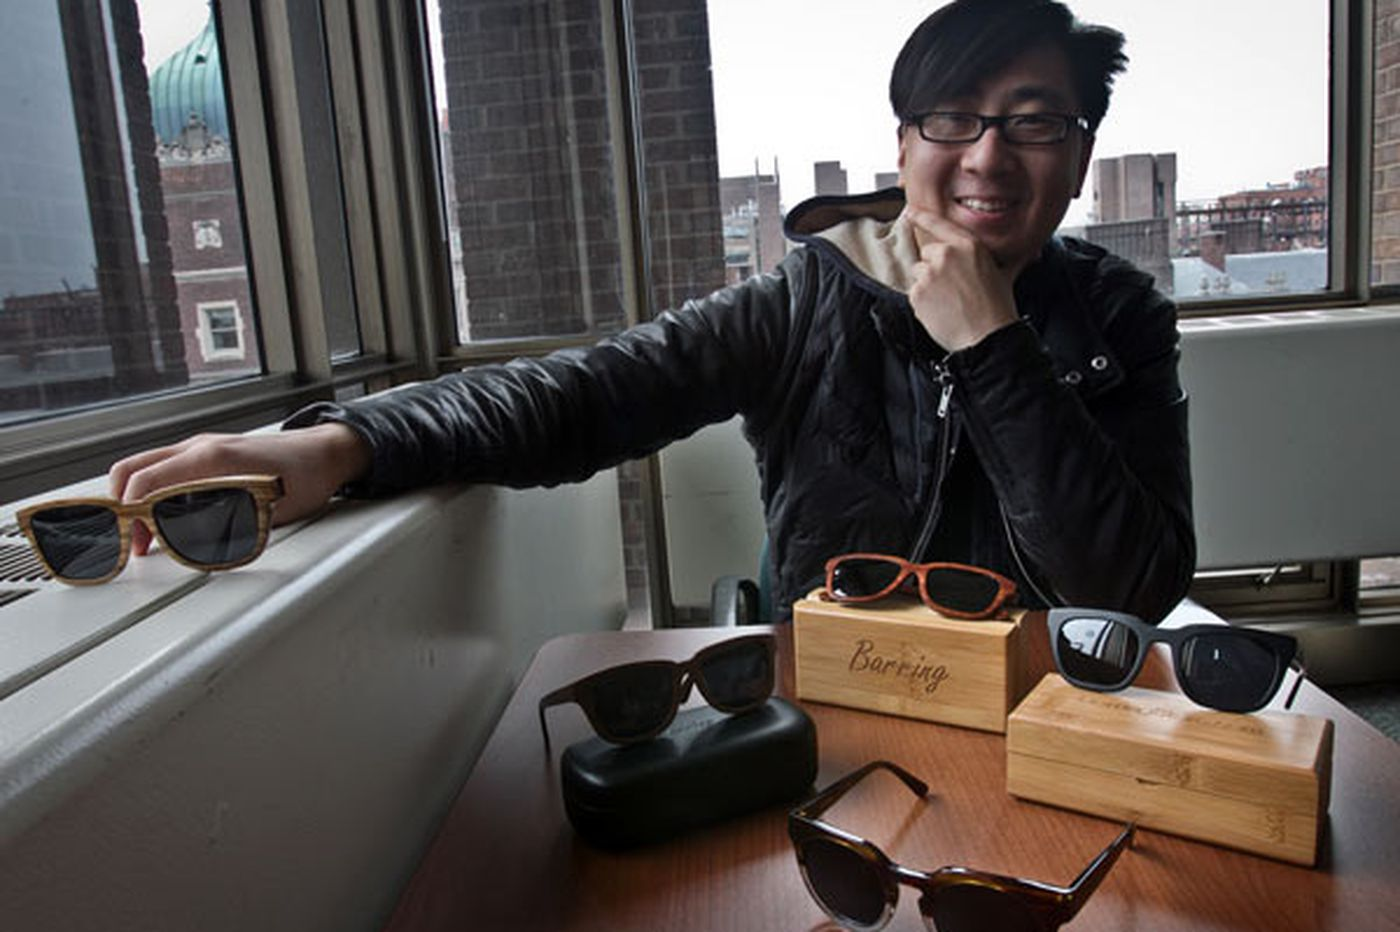 Designer-eyewear startup envisions growth while also giving back